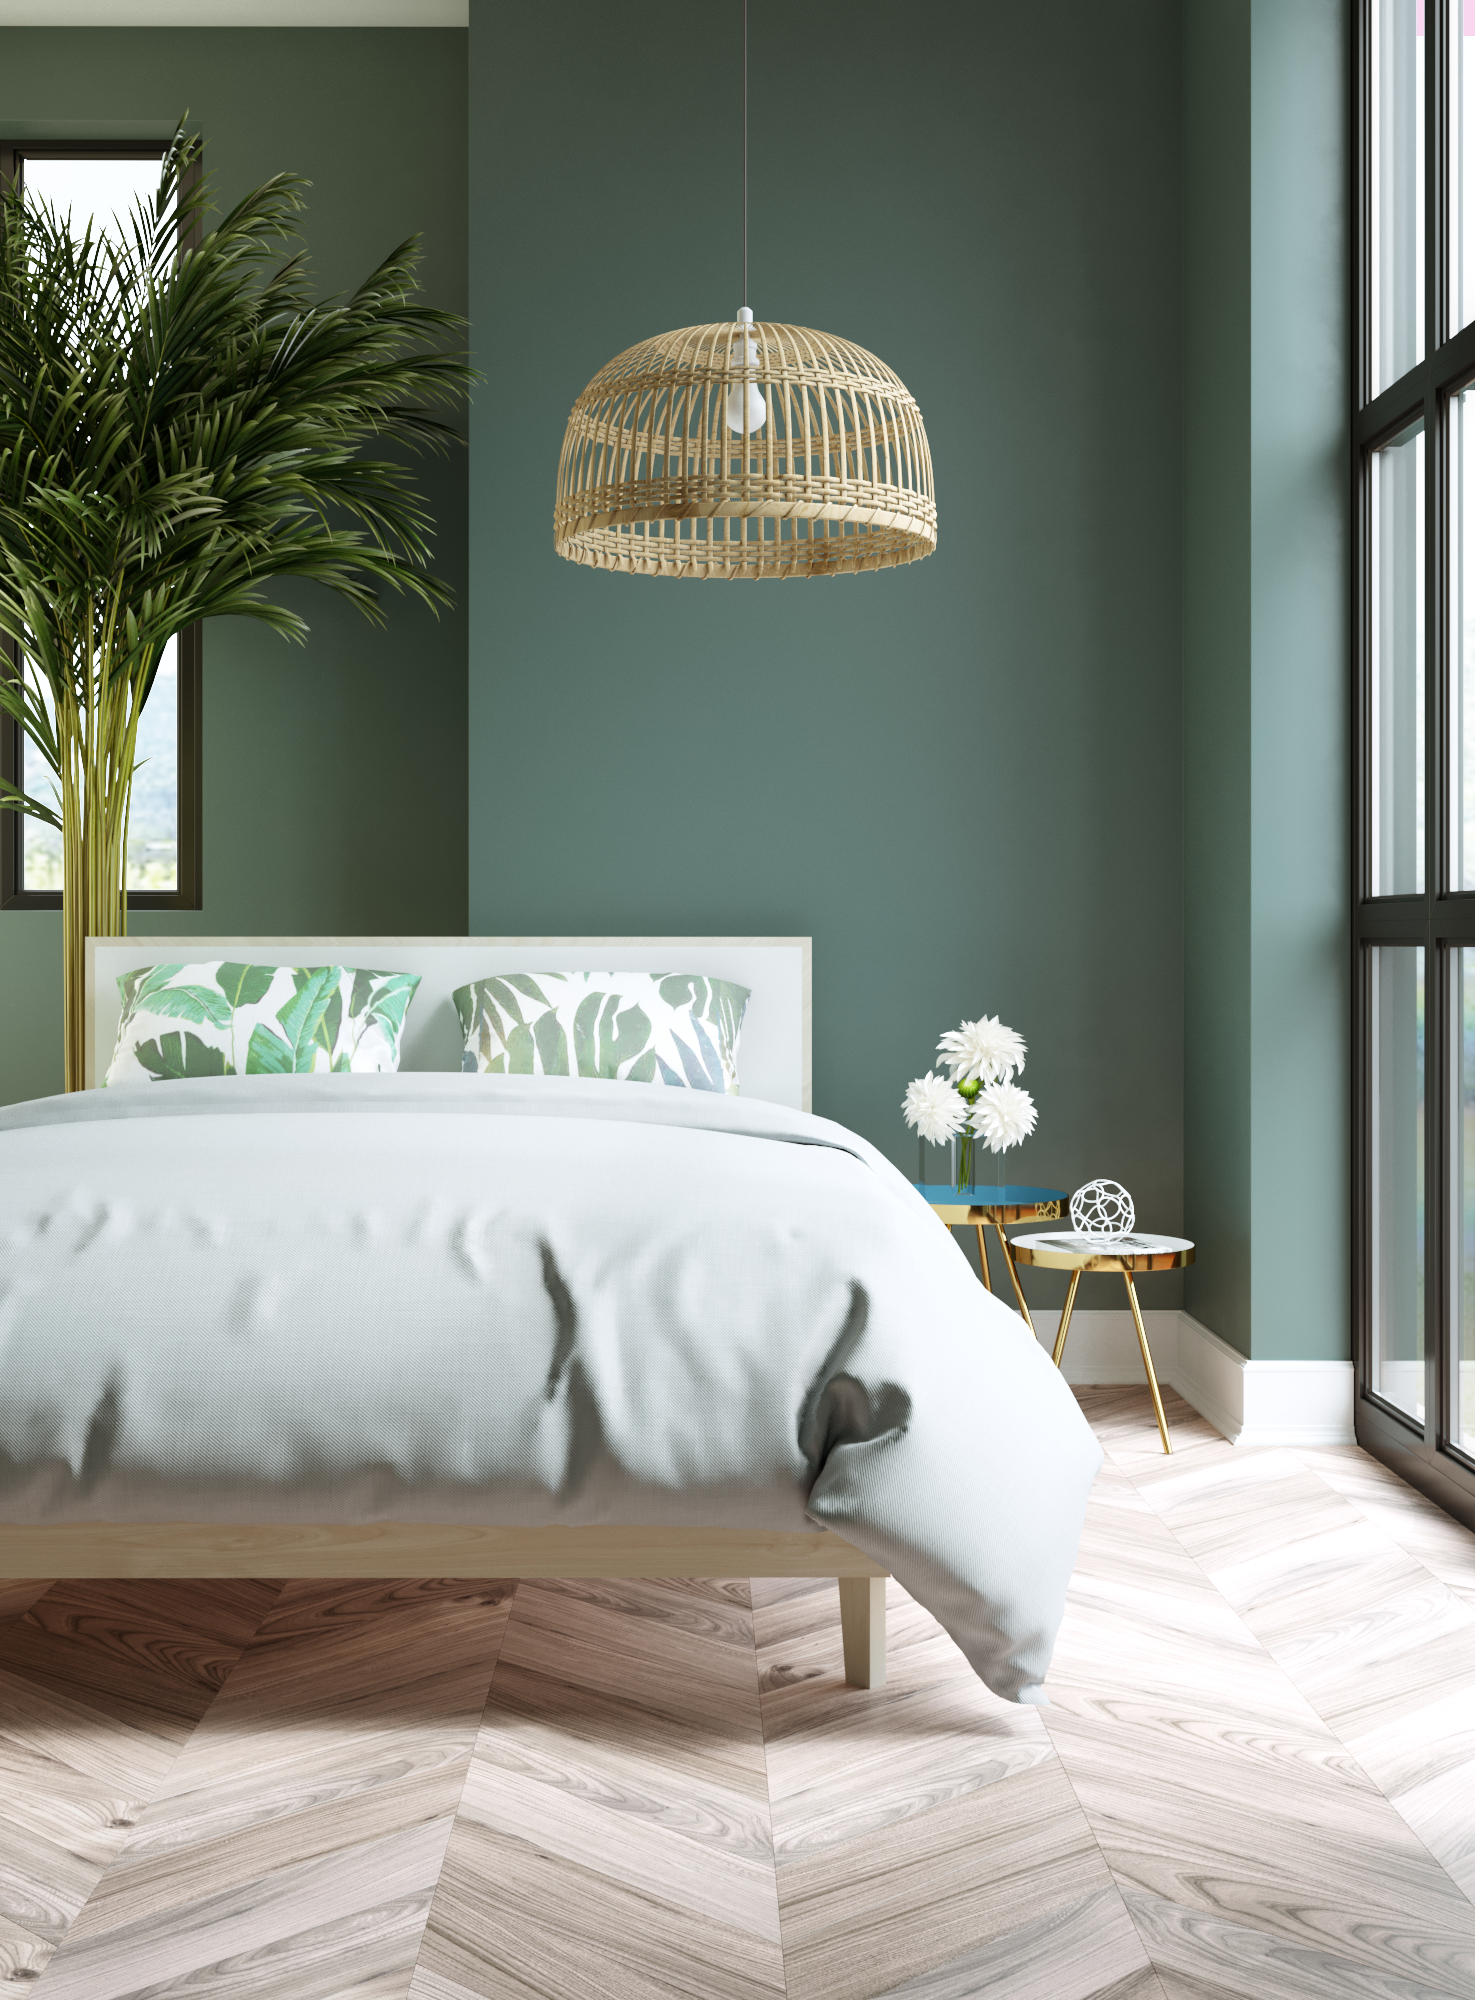 Chambre scandinave exotique verte beige blanche: inspiration style ...